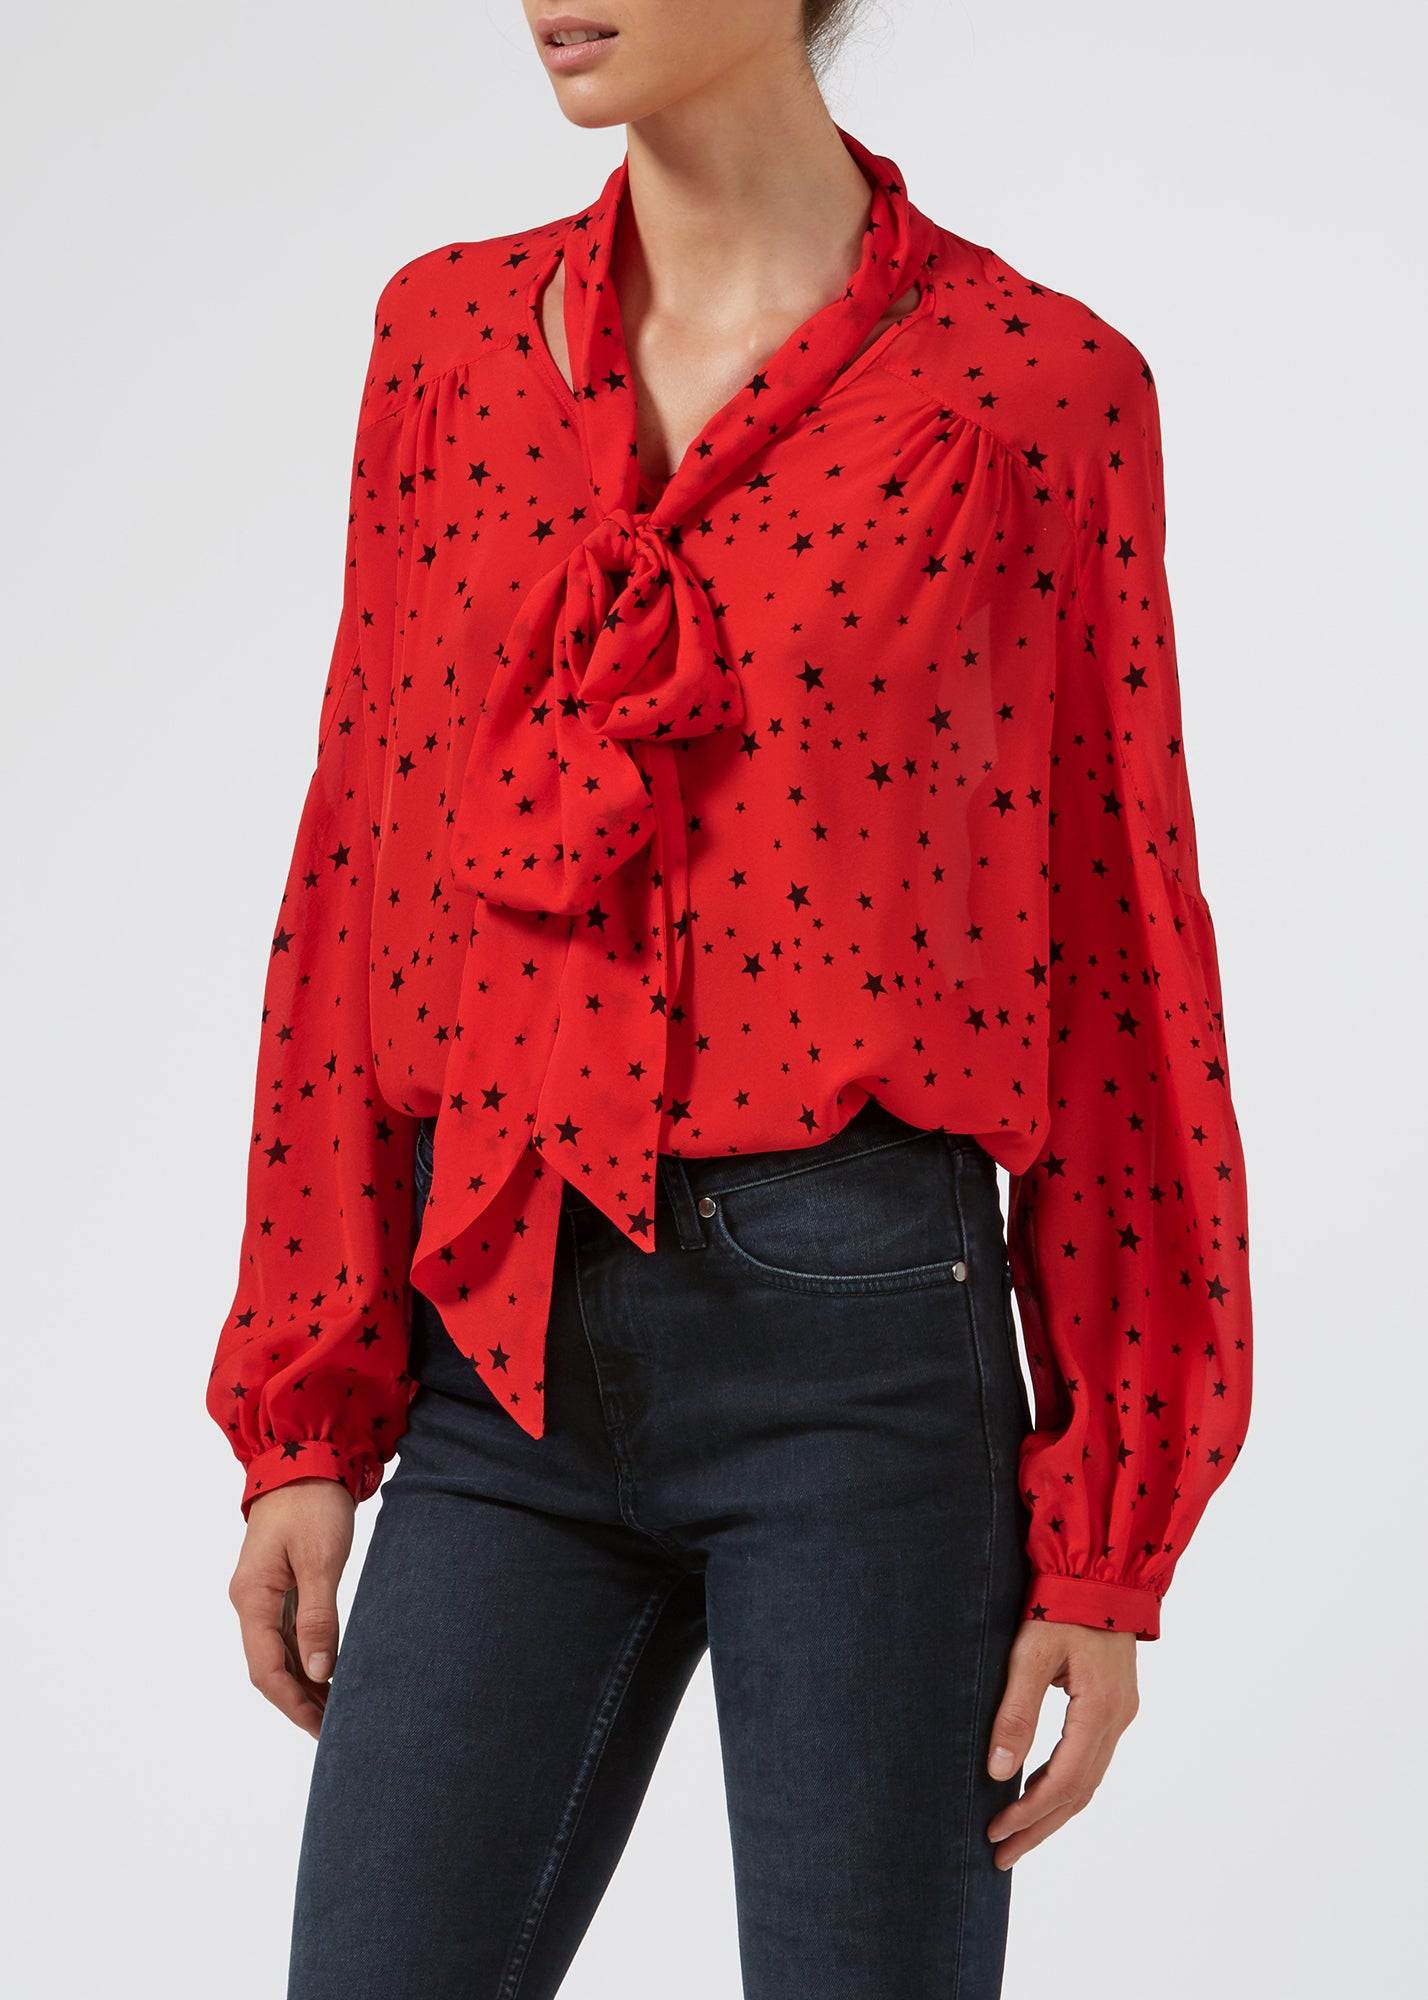 Maggie In Love Blouse - Star Crossed Nights